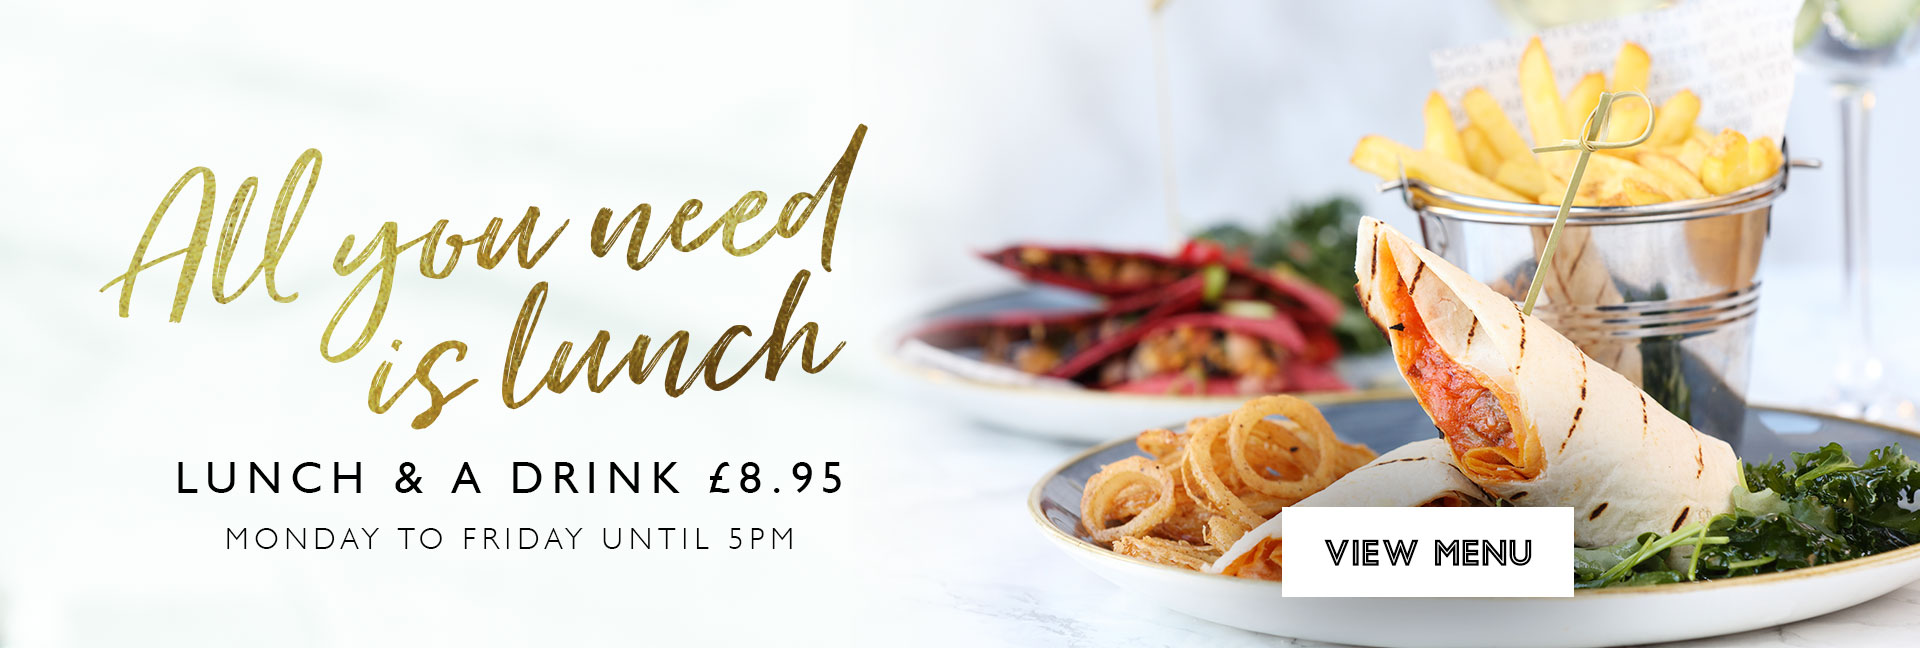 Lunch Offer at All Bar One Southampton